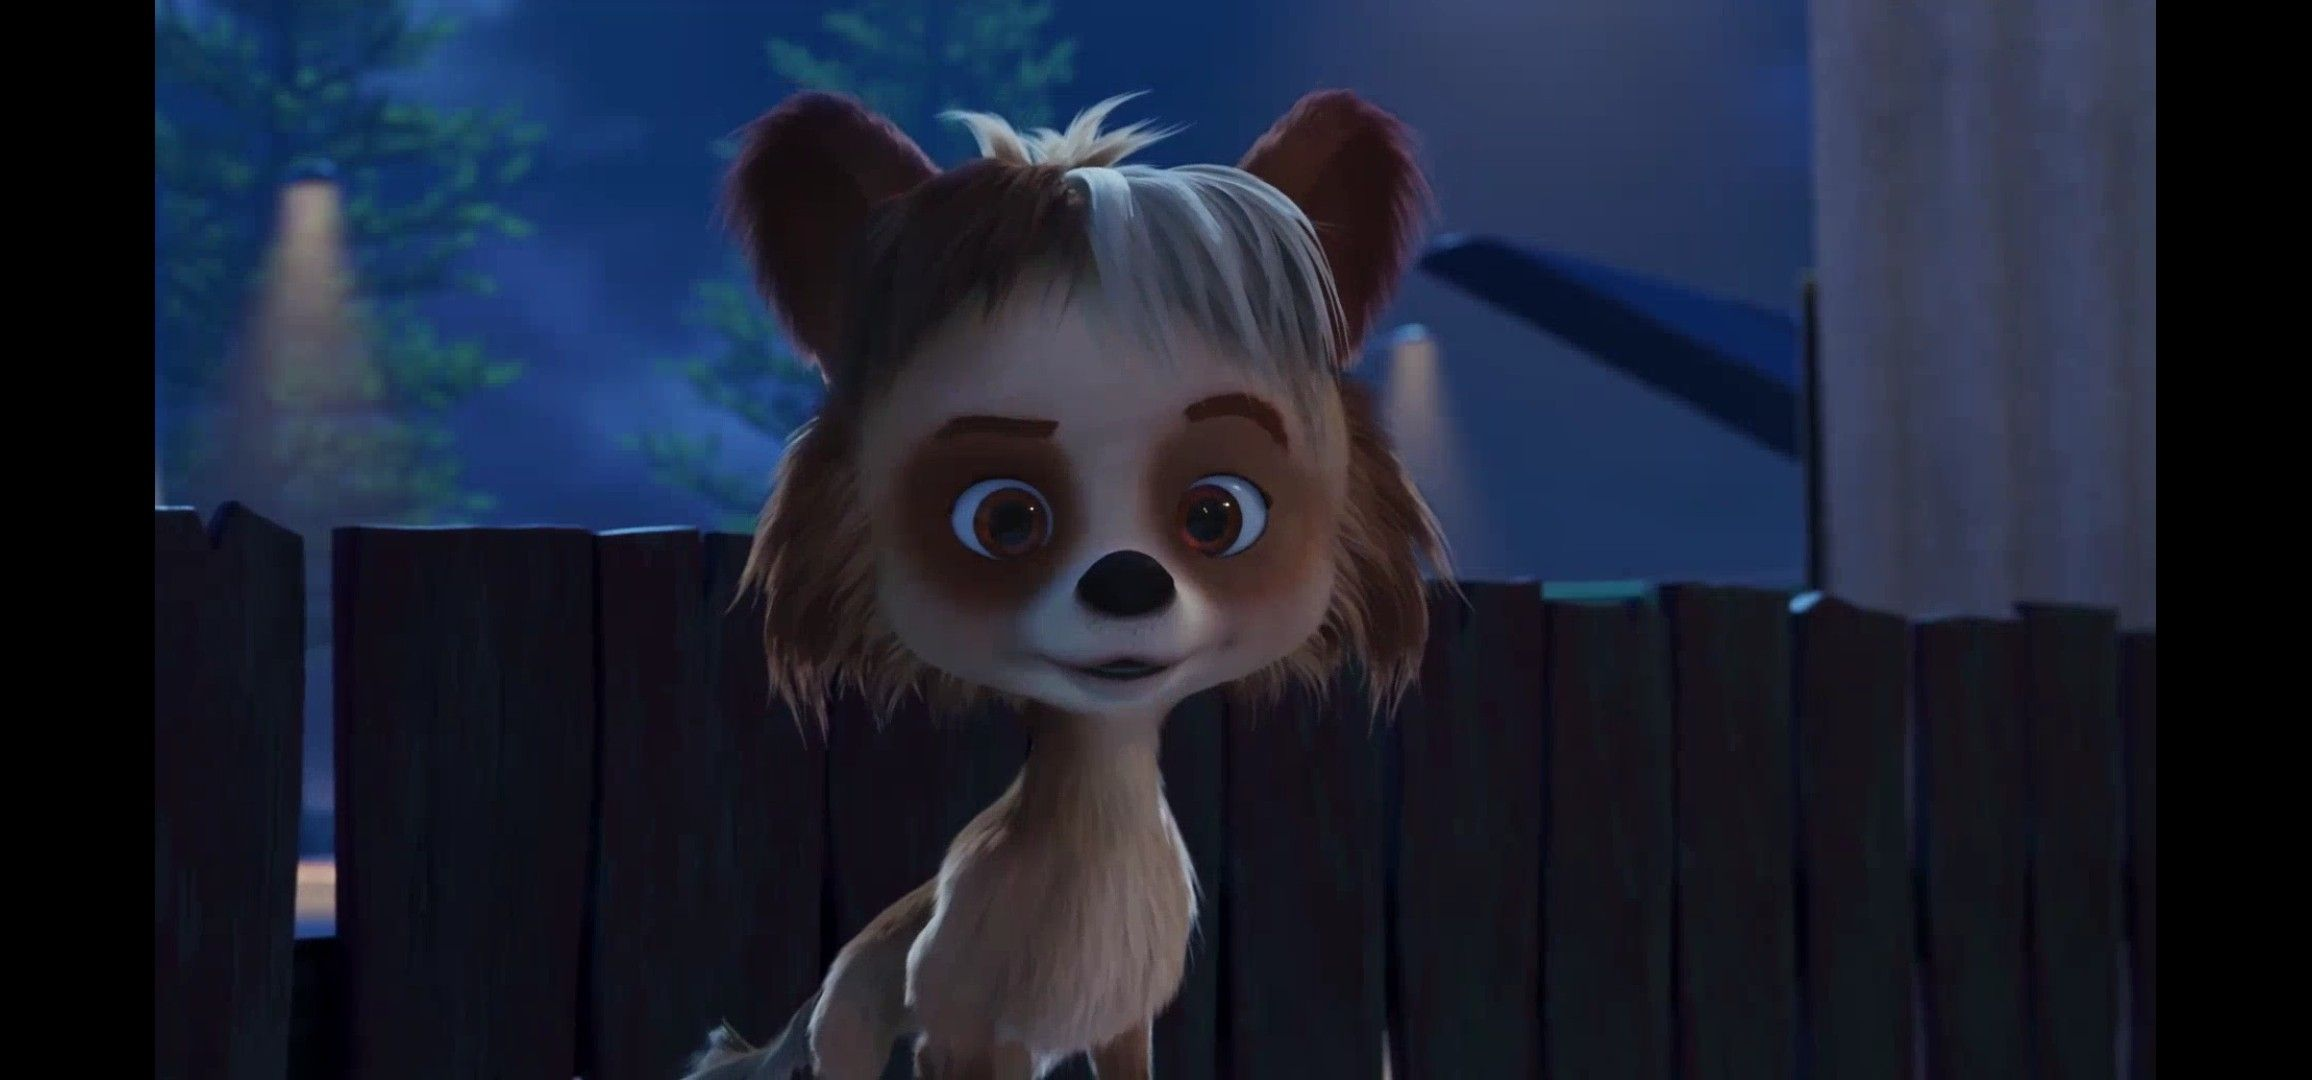 Pin By Kaid Lycan On 100 Wolf In 2021 Disney Zootopia Wolf Paw Patrol